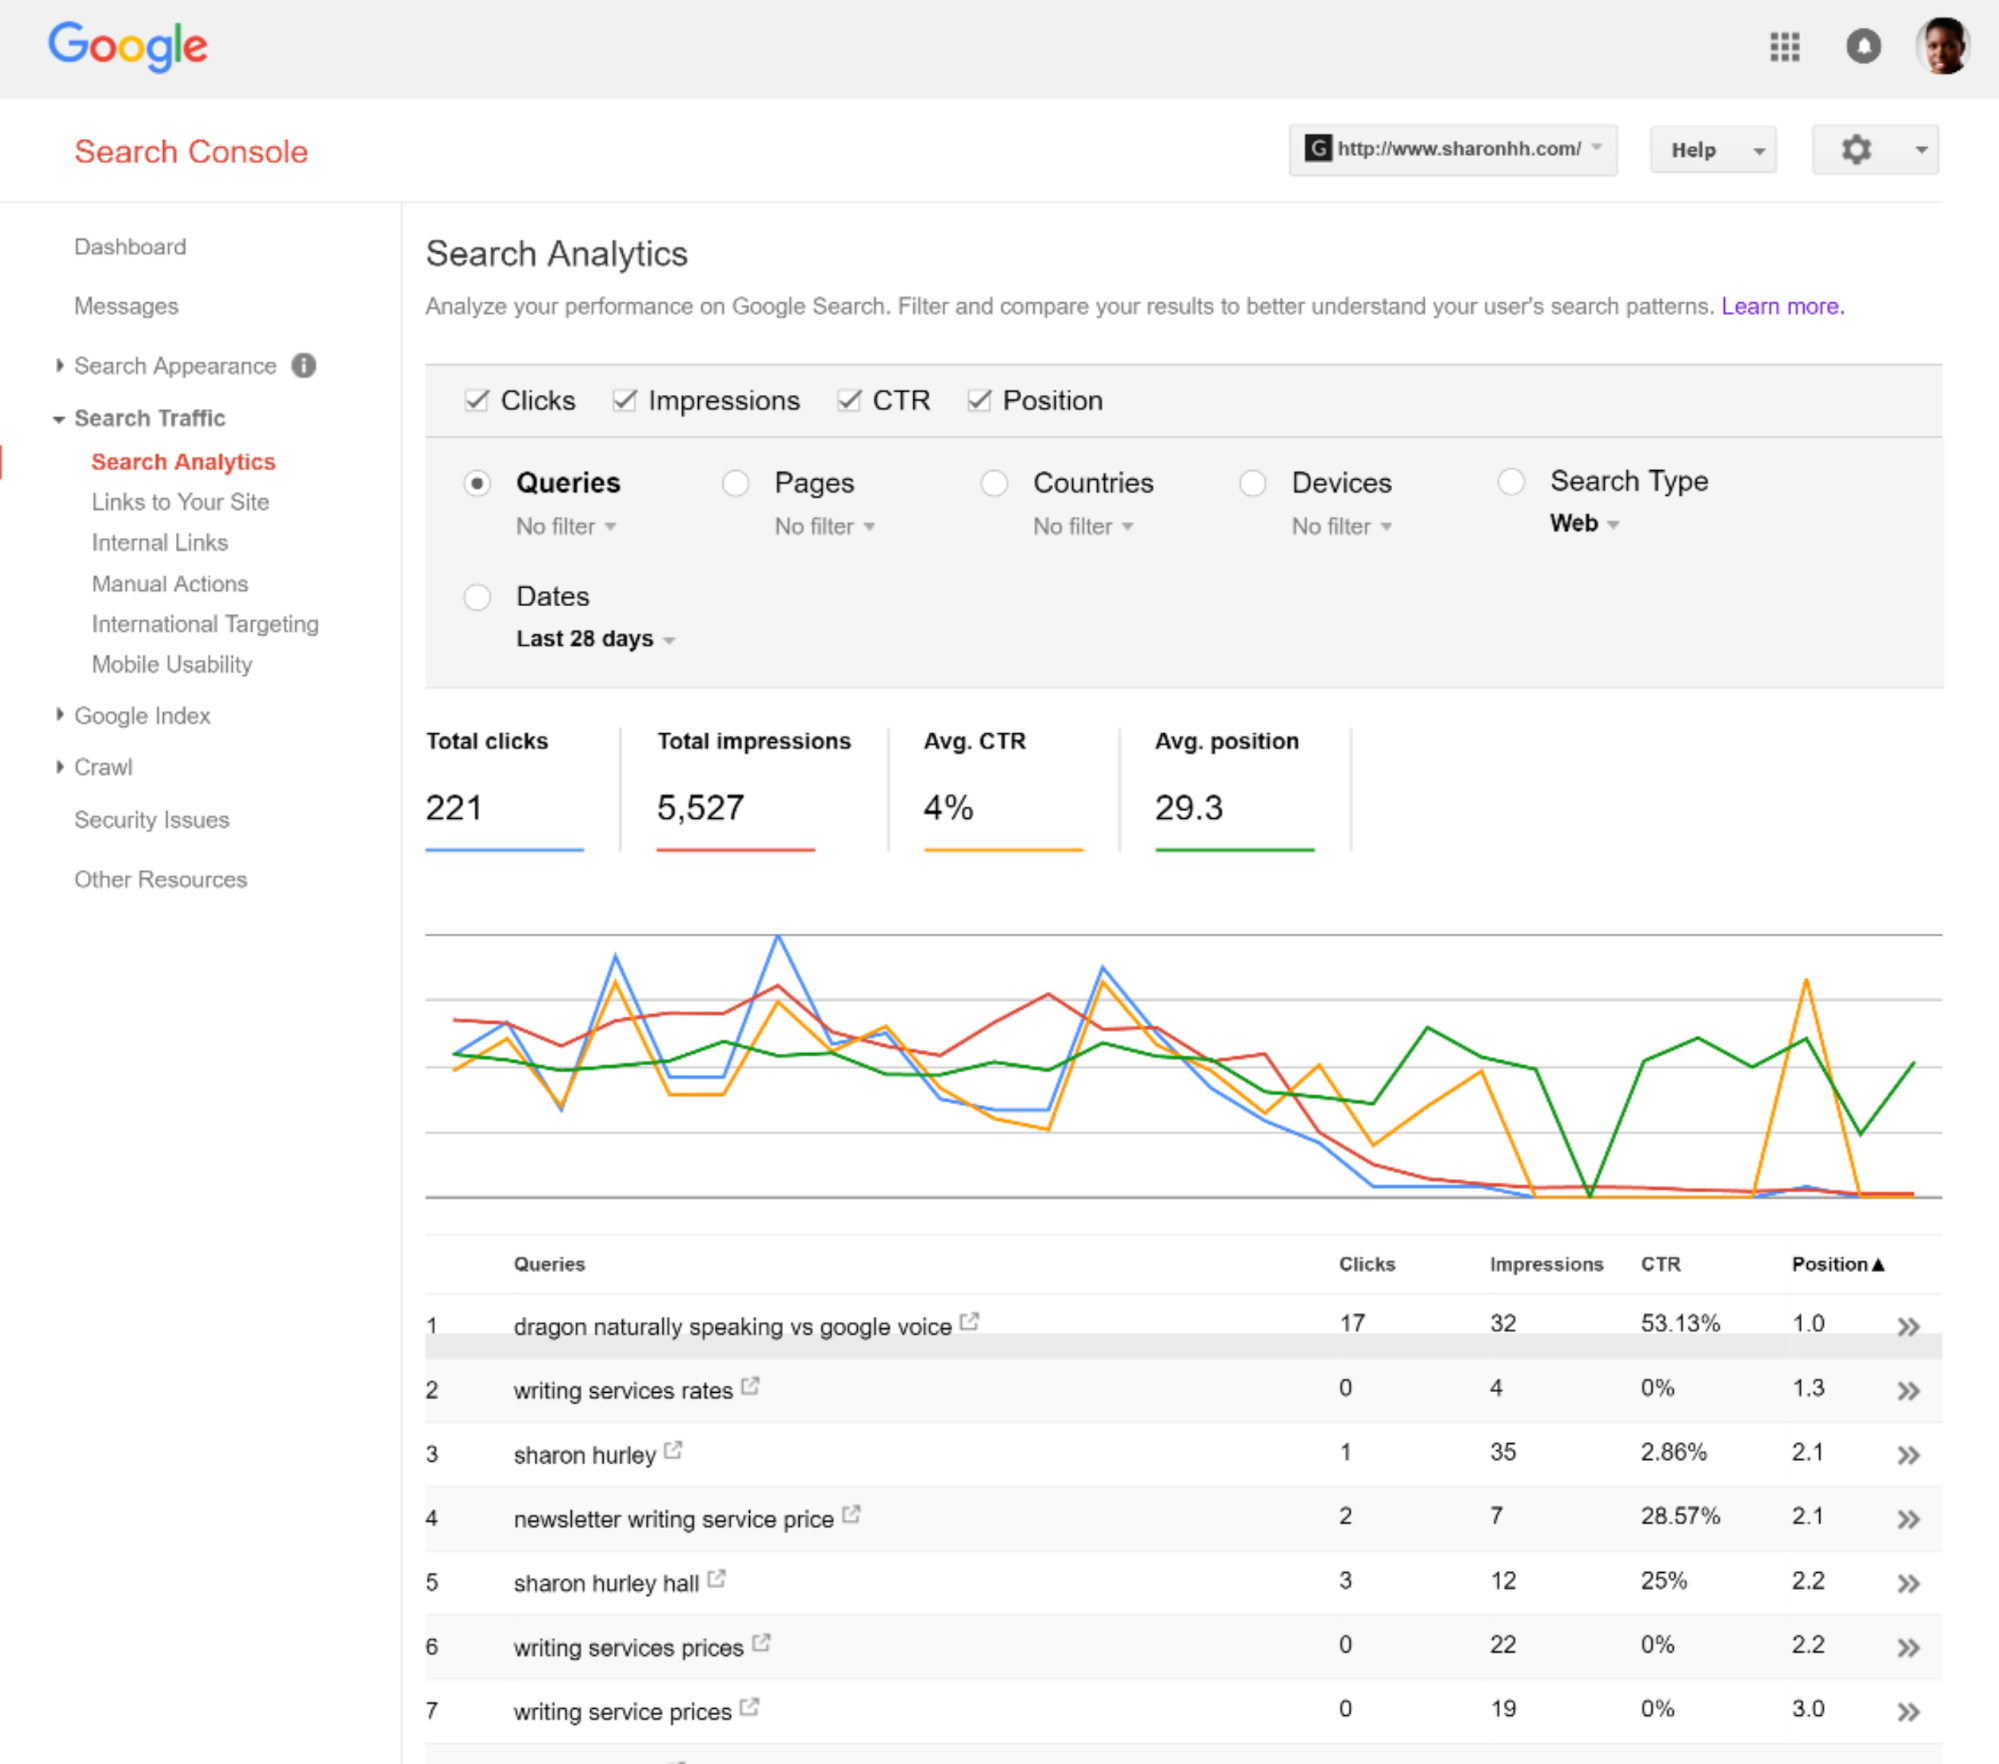 google-search-console-search-analytics